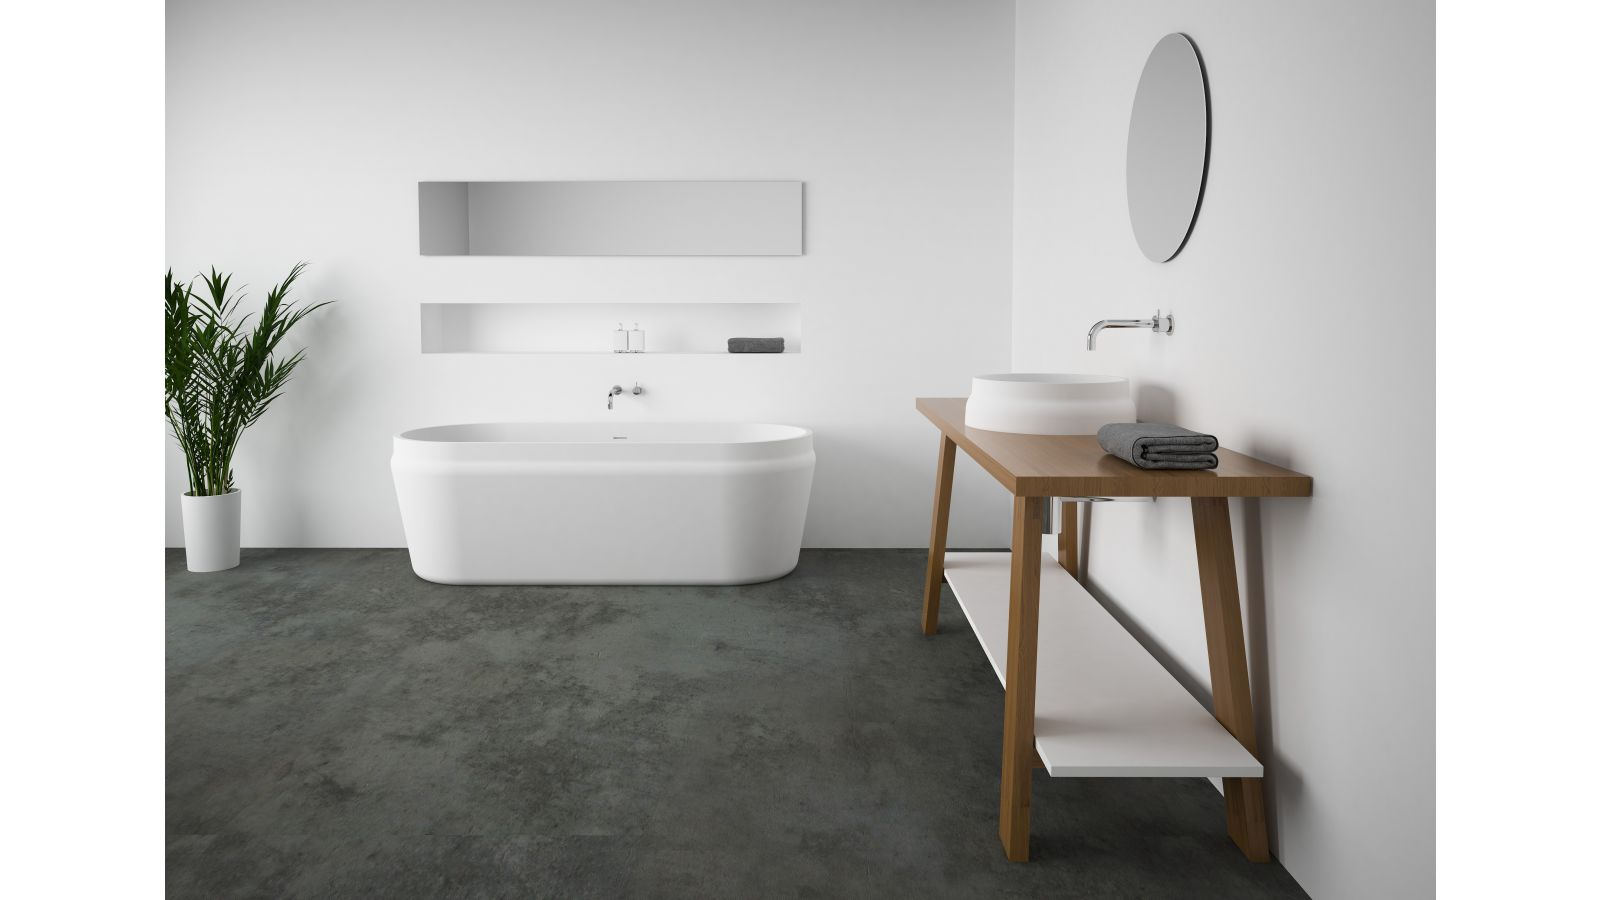 Latis oval bath